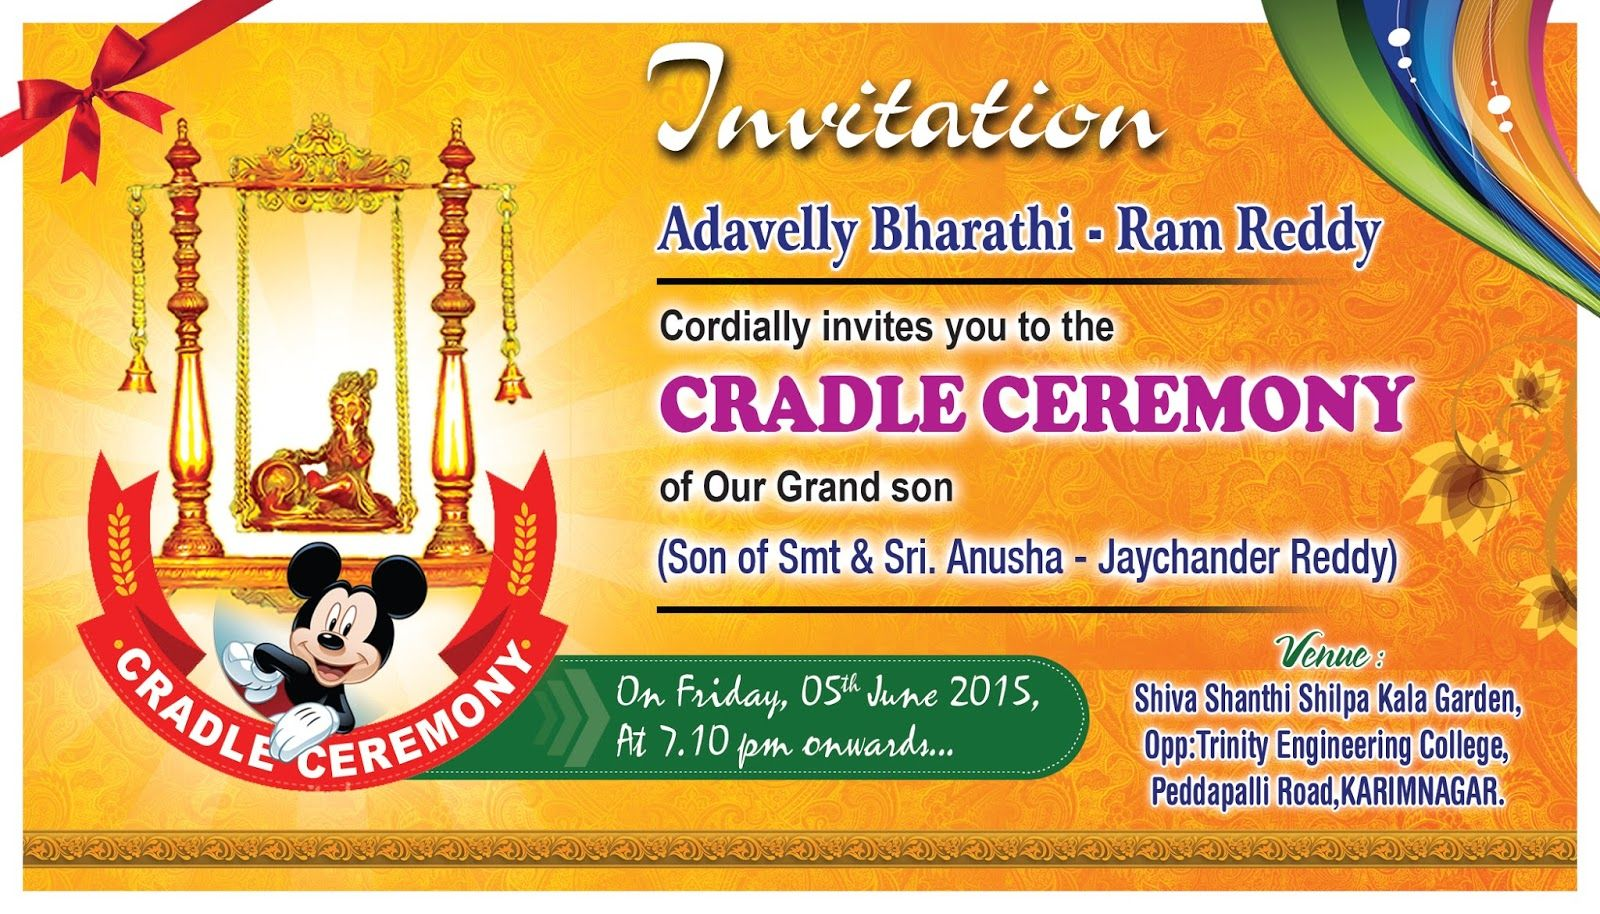 Cradle Ceremony Invitation Card Psd Template Free Downloads Naveengfx Cradle Ceremony Naming Ceremony Invitation 1st Birthday Party Invitations